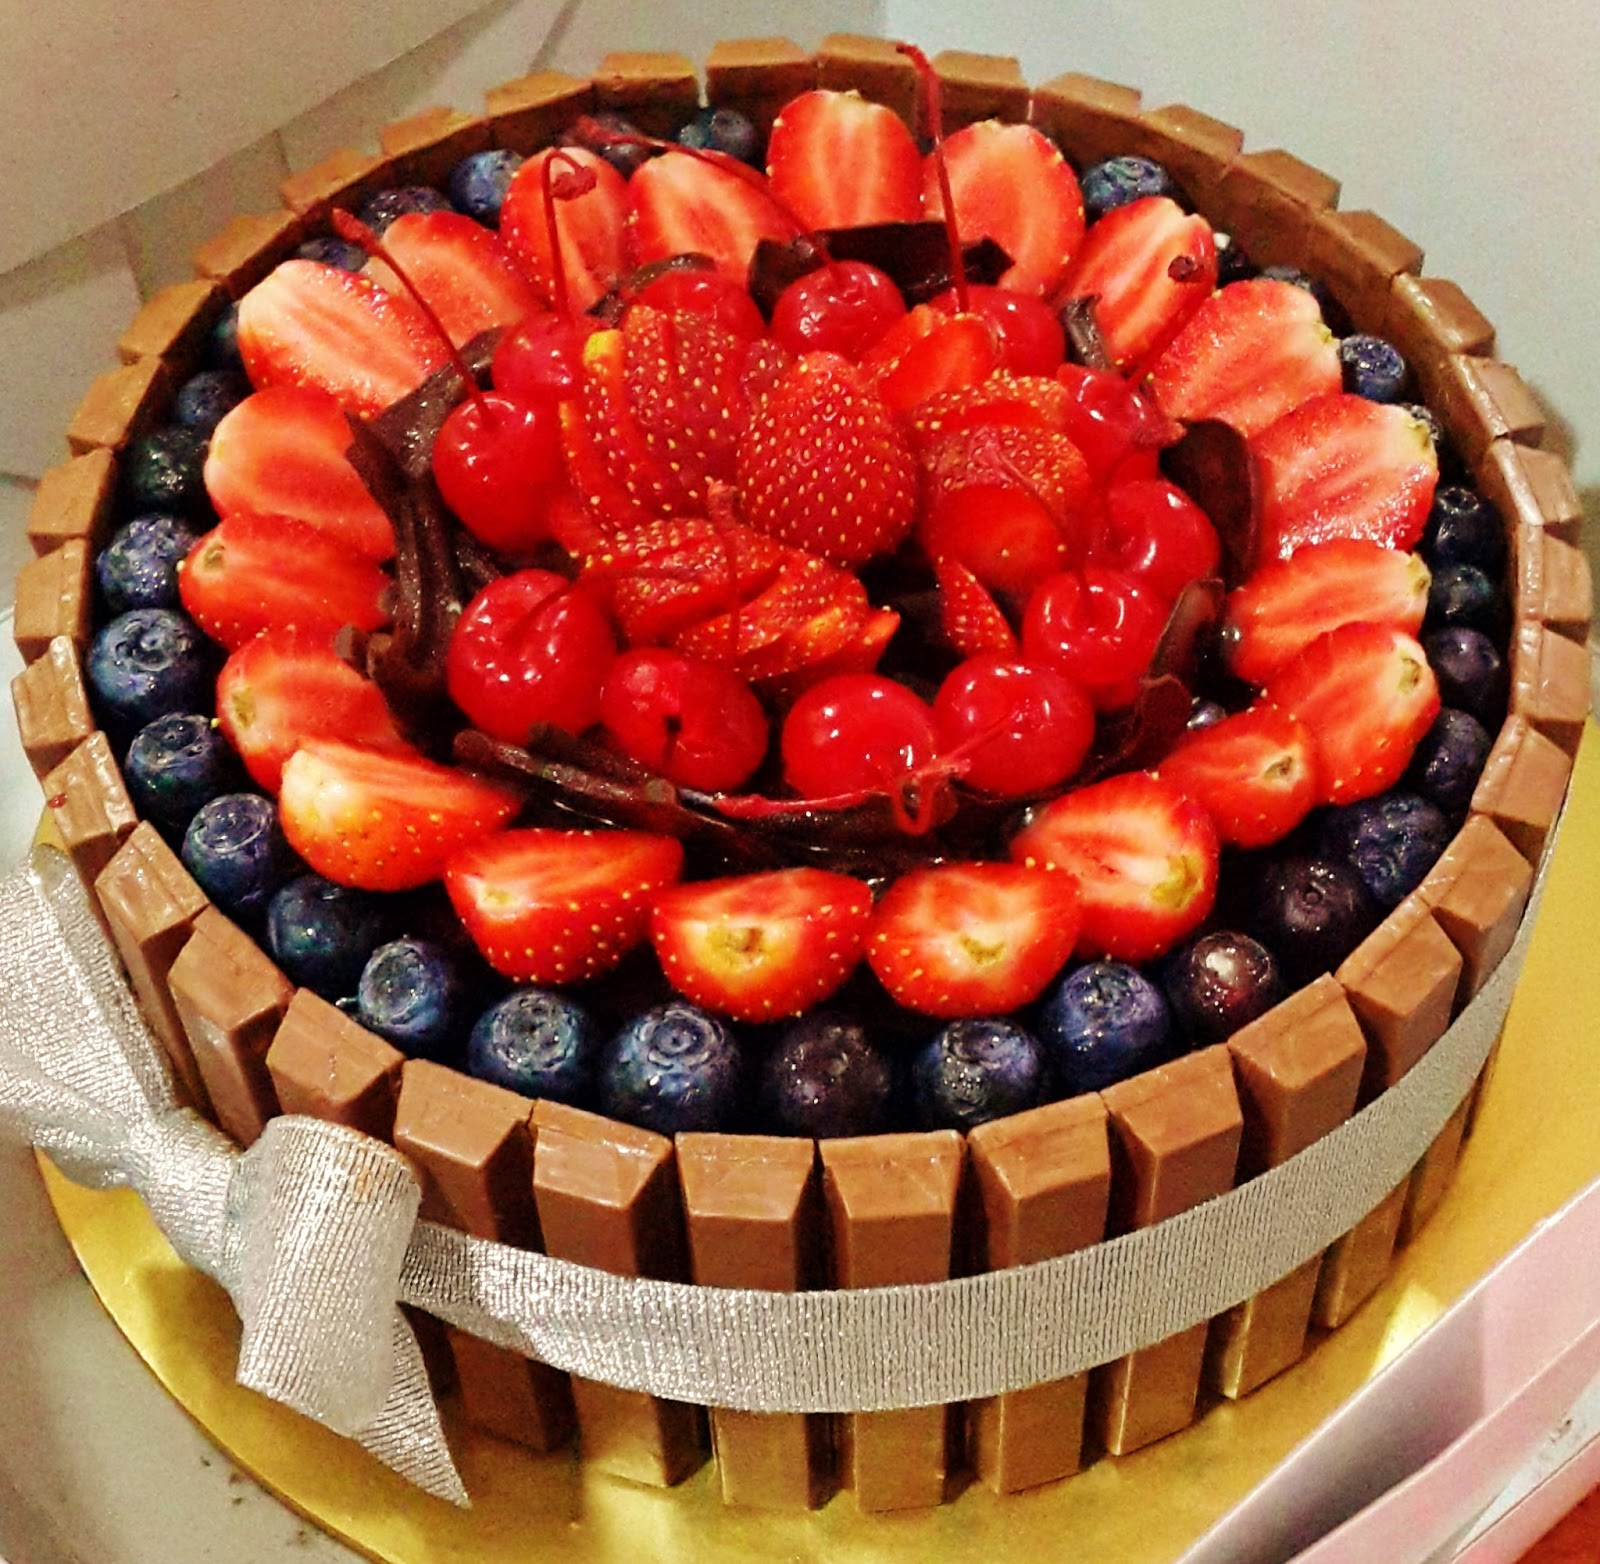 How To Make A Kit Kat Cake With Strawberries